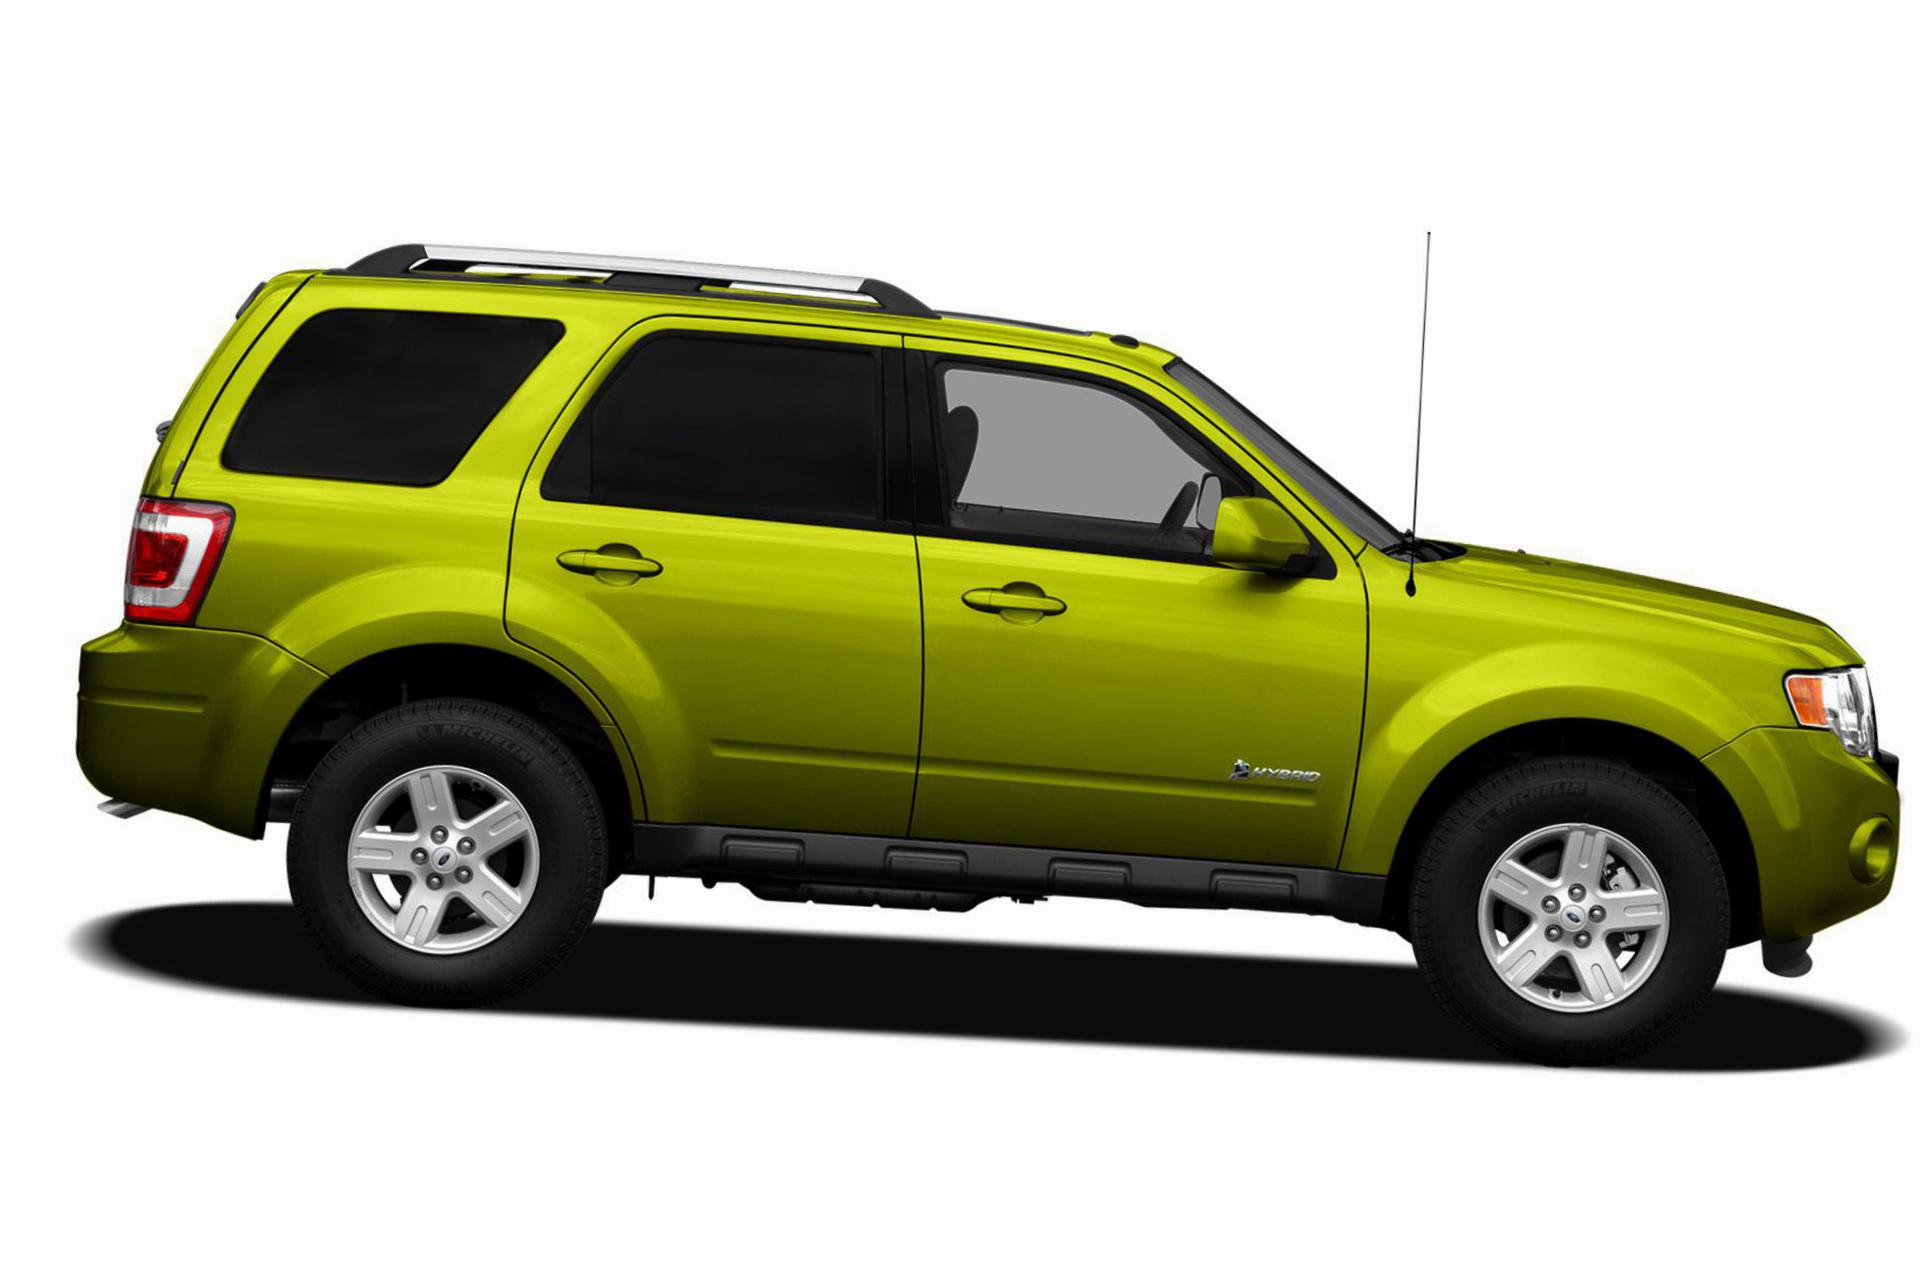 Ford Escape models 2009